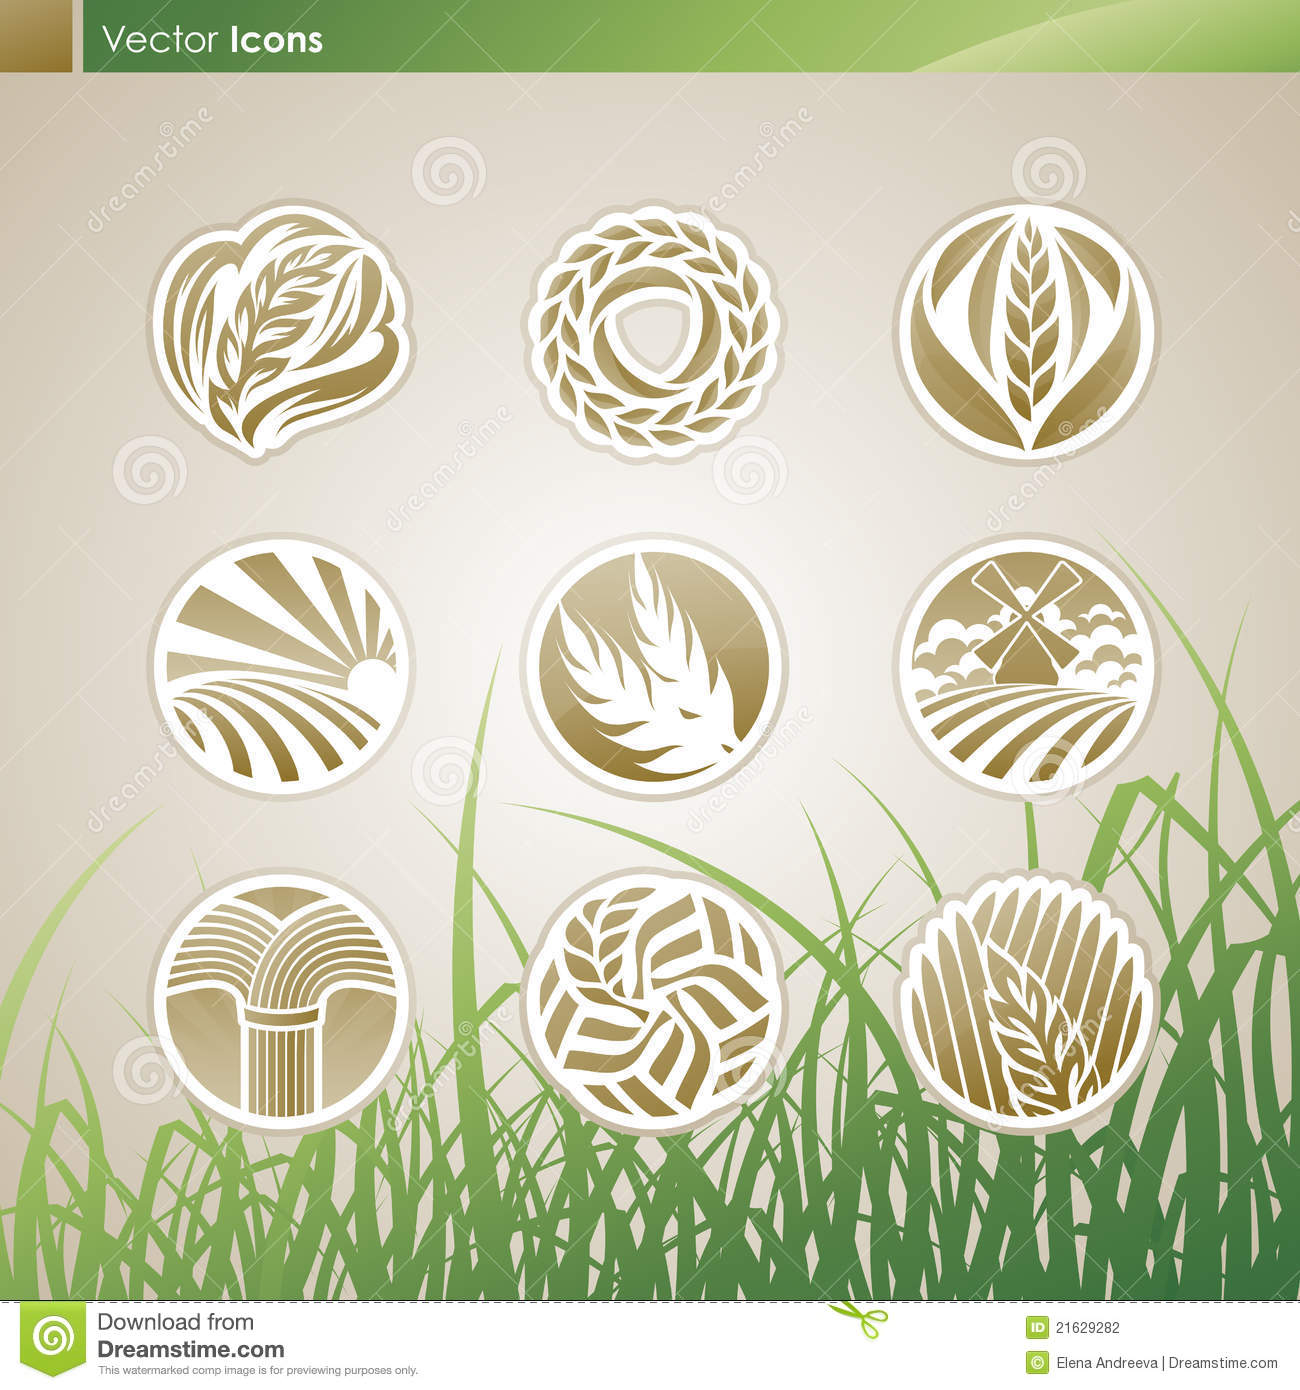 Wheat and rye. Vector logo templates set.